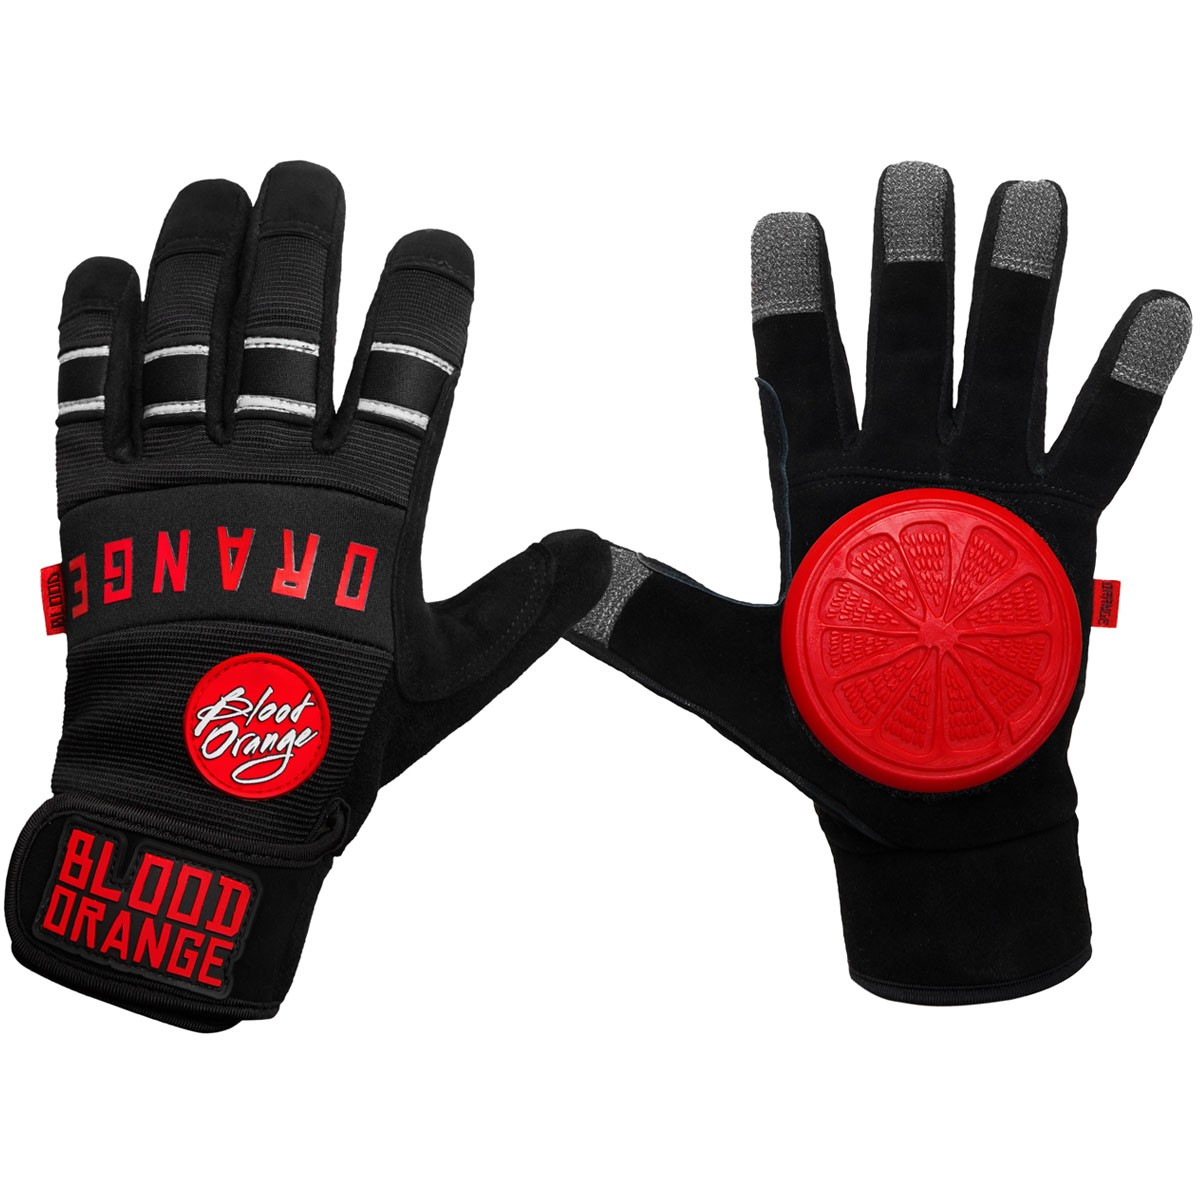 Blood Orange Knuckles Slide Gloves - Black / Black